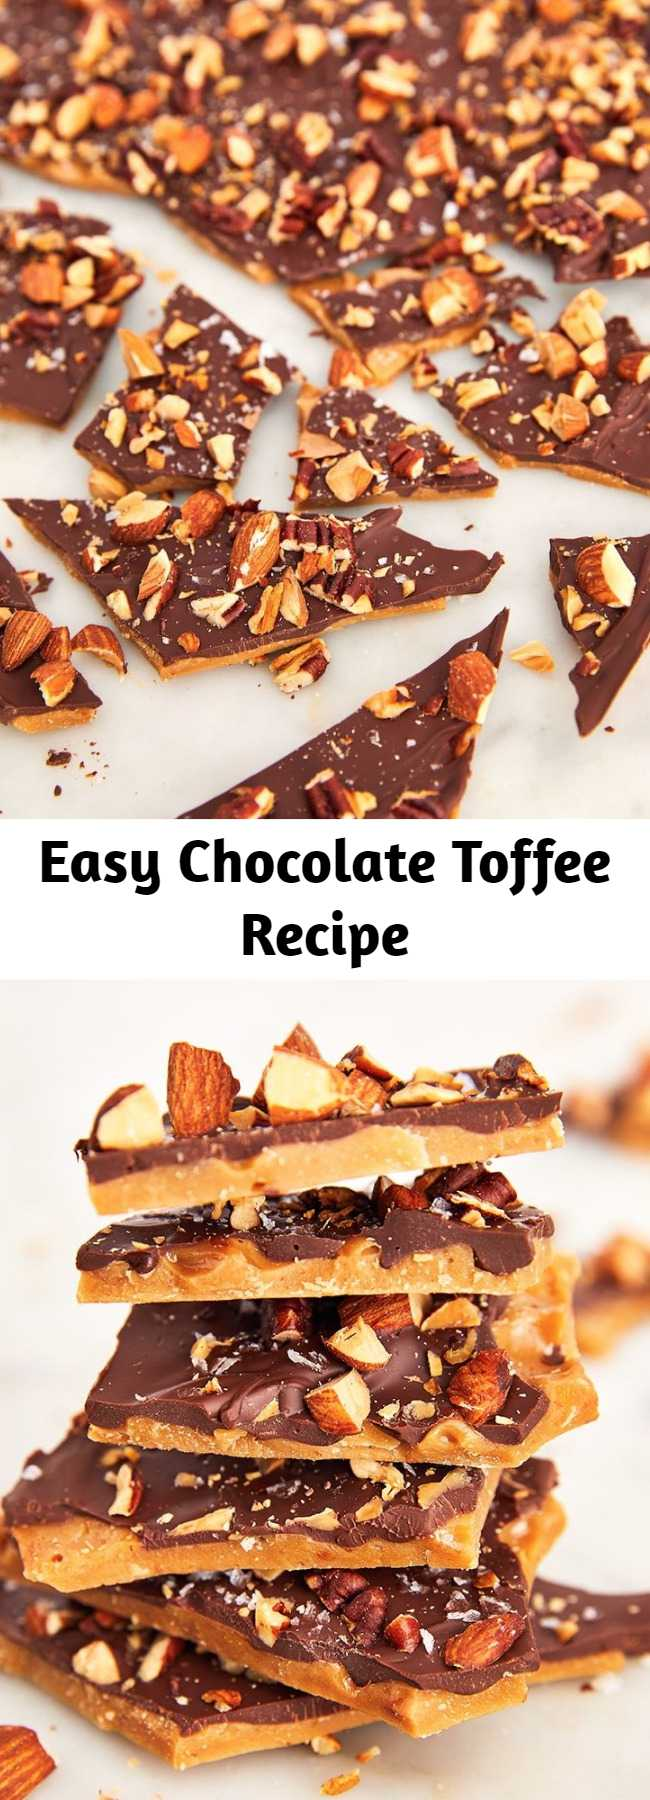 Easy Chocolate Toffee Recipe - Need a gift for friends, coworkers, and the babysitter? Chocolate toffee to the rescue. This recipe is really simple, but toffee in general can be a littttlllleee fussy. Our biggest piece of advice: WHISK CONSTANTLY! The moment you walk away from the saucepan, the butter and sugar will separate. #easy #recipe #fromscratch #toffee #chocolate #christmas #holidays #gift #homemade #nuts #almonds #pecans #bark #bars